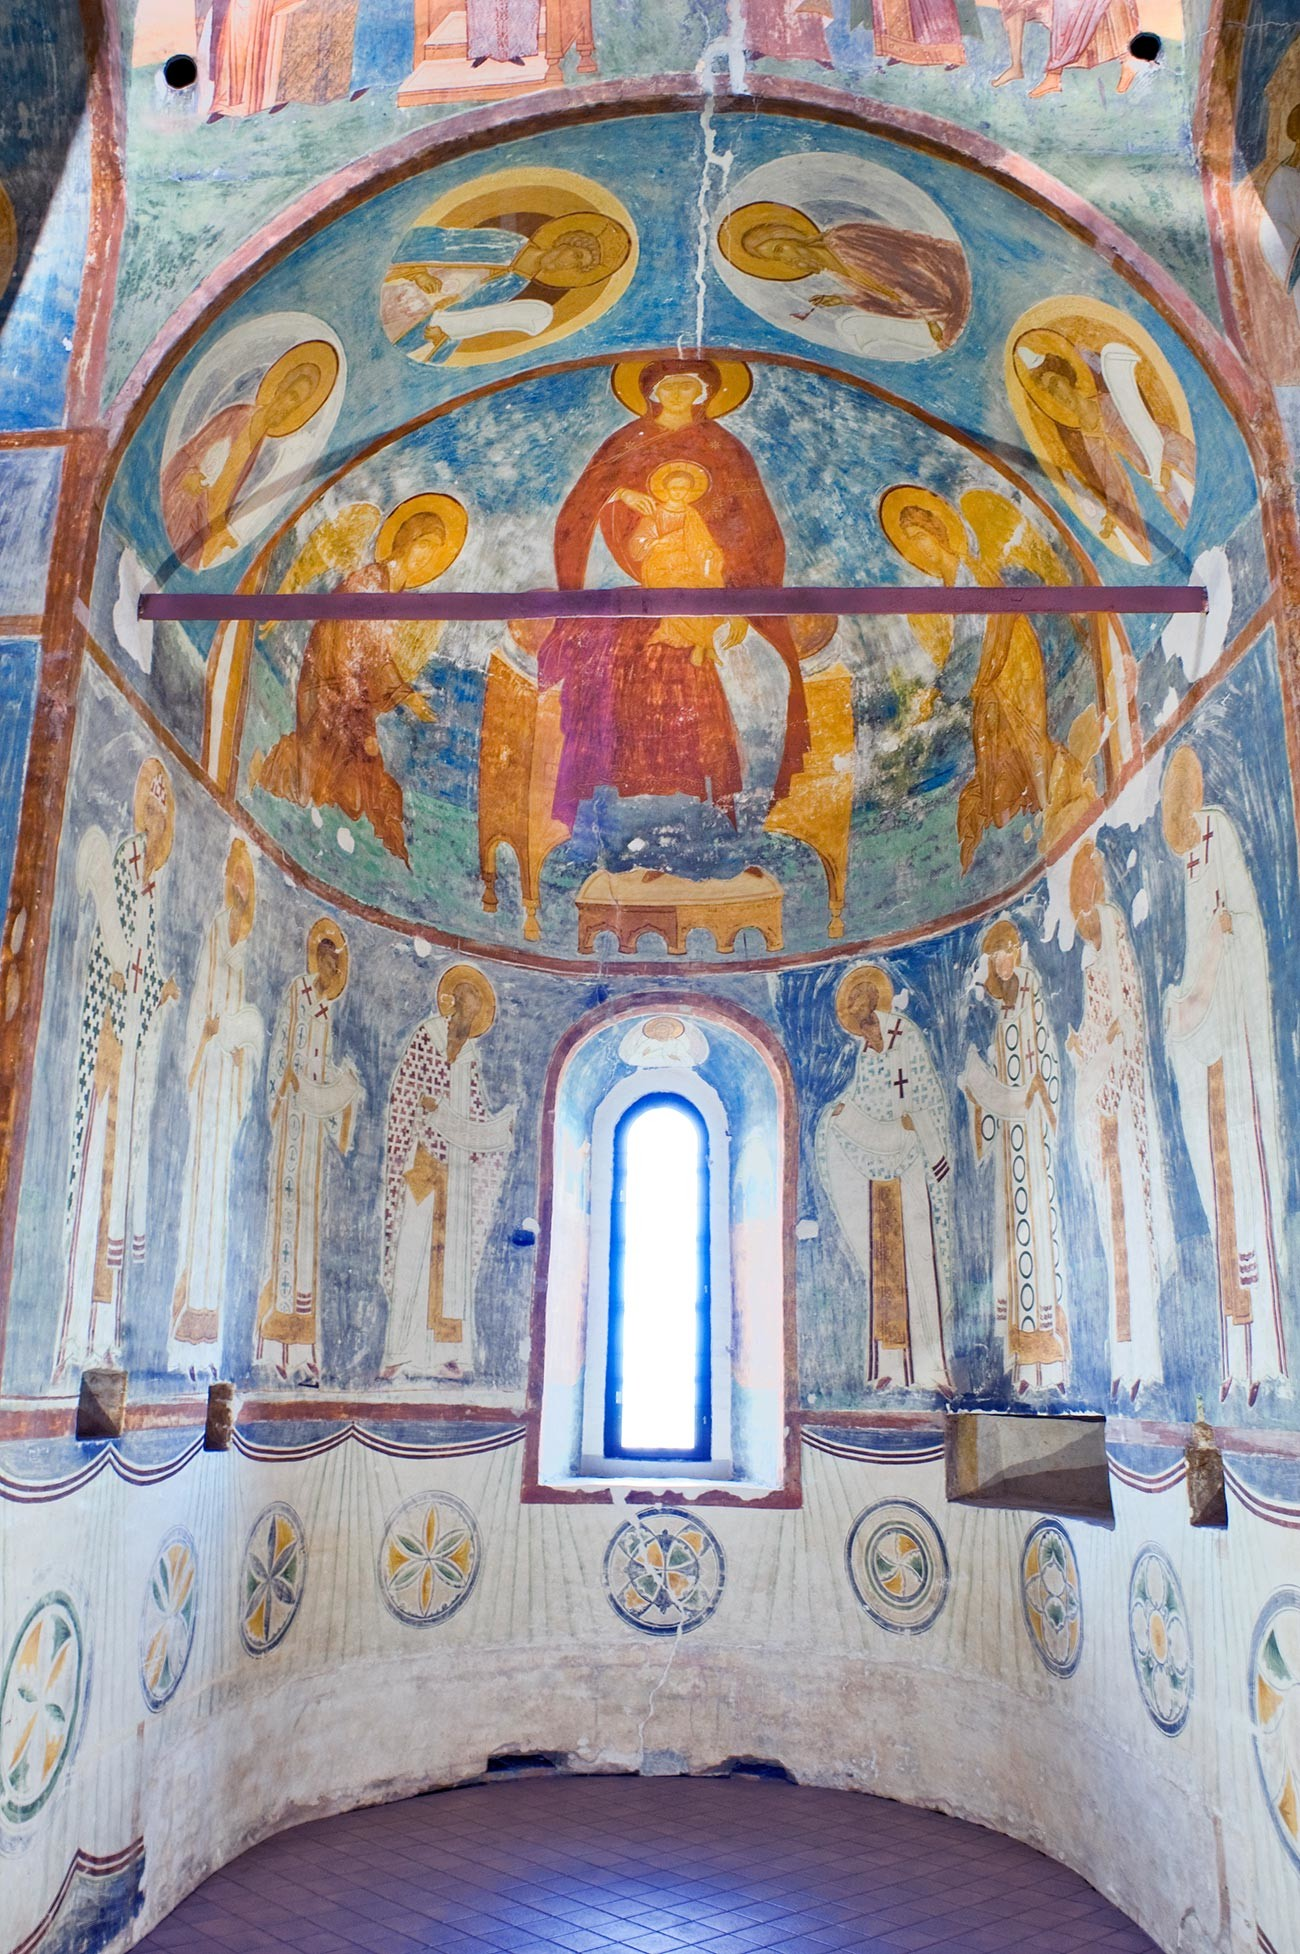 Cathedral of Nativity. Central apse (for main altar). Fresco of Mary enthroned with Archangels Gabriel & Michael. Lower row: Church Fathers at liturgy. Foreground: iron tie rod stabilizing the walls. June 1, 2014